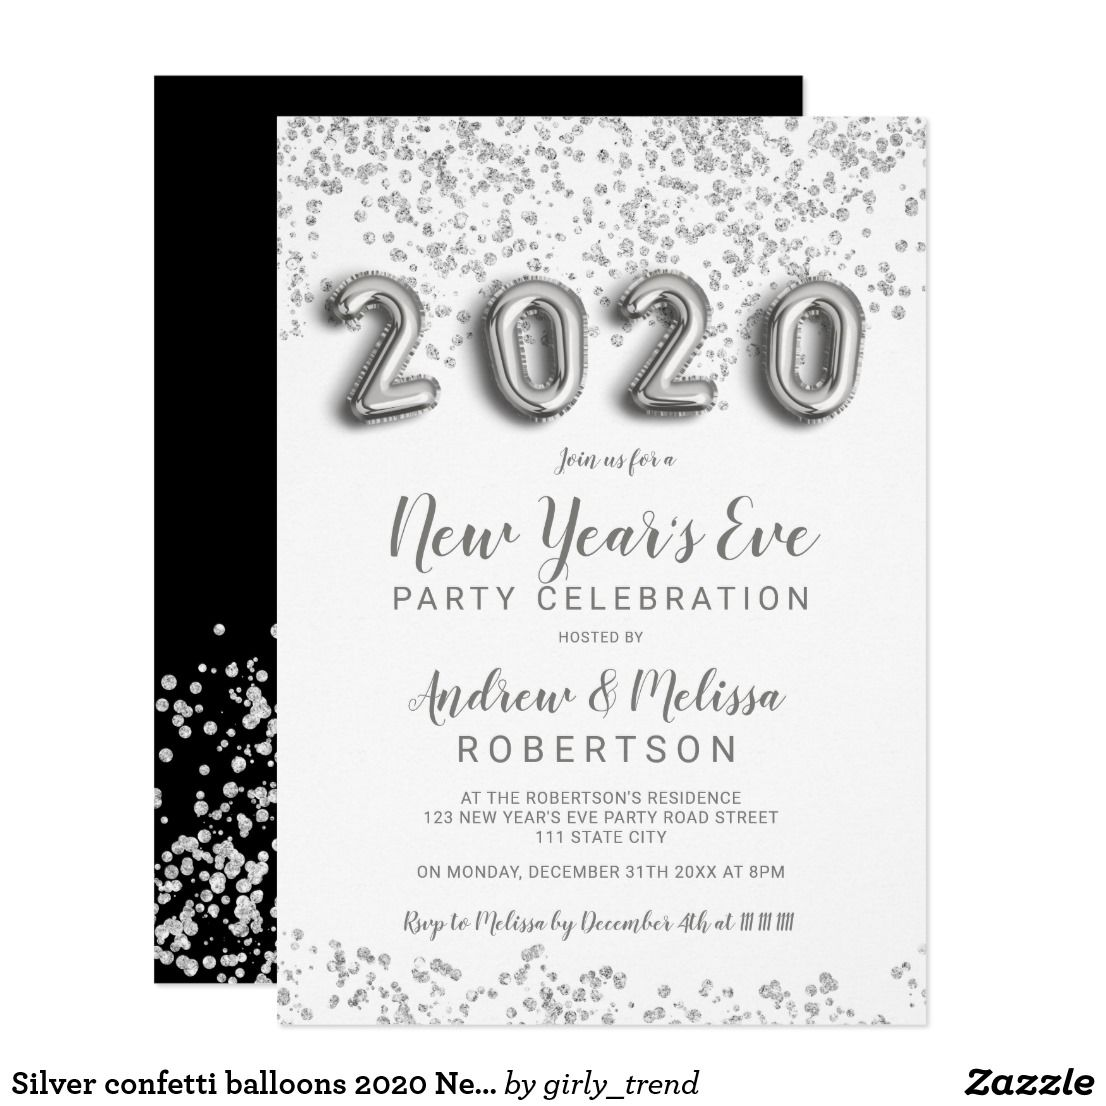 Silver confetti balloons 2020 New Year's eve Invitation